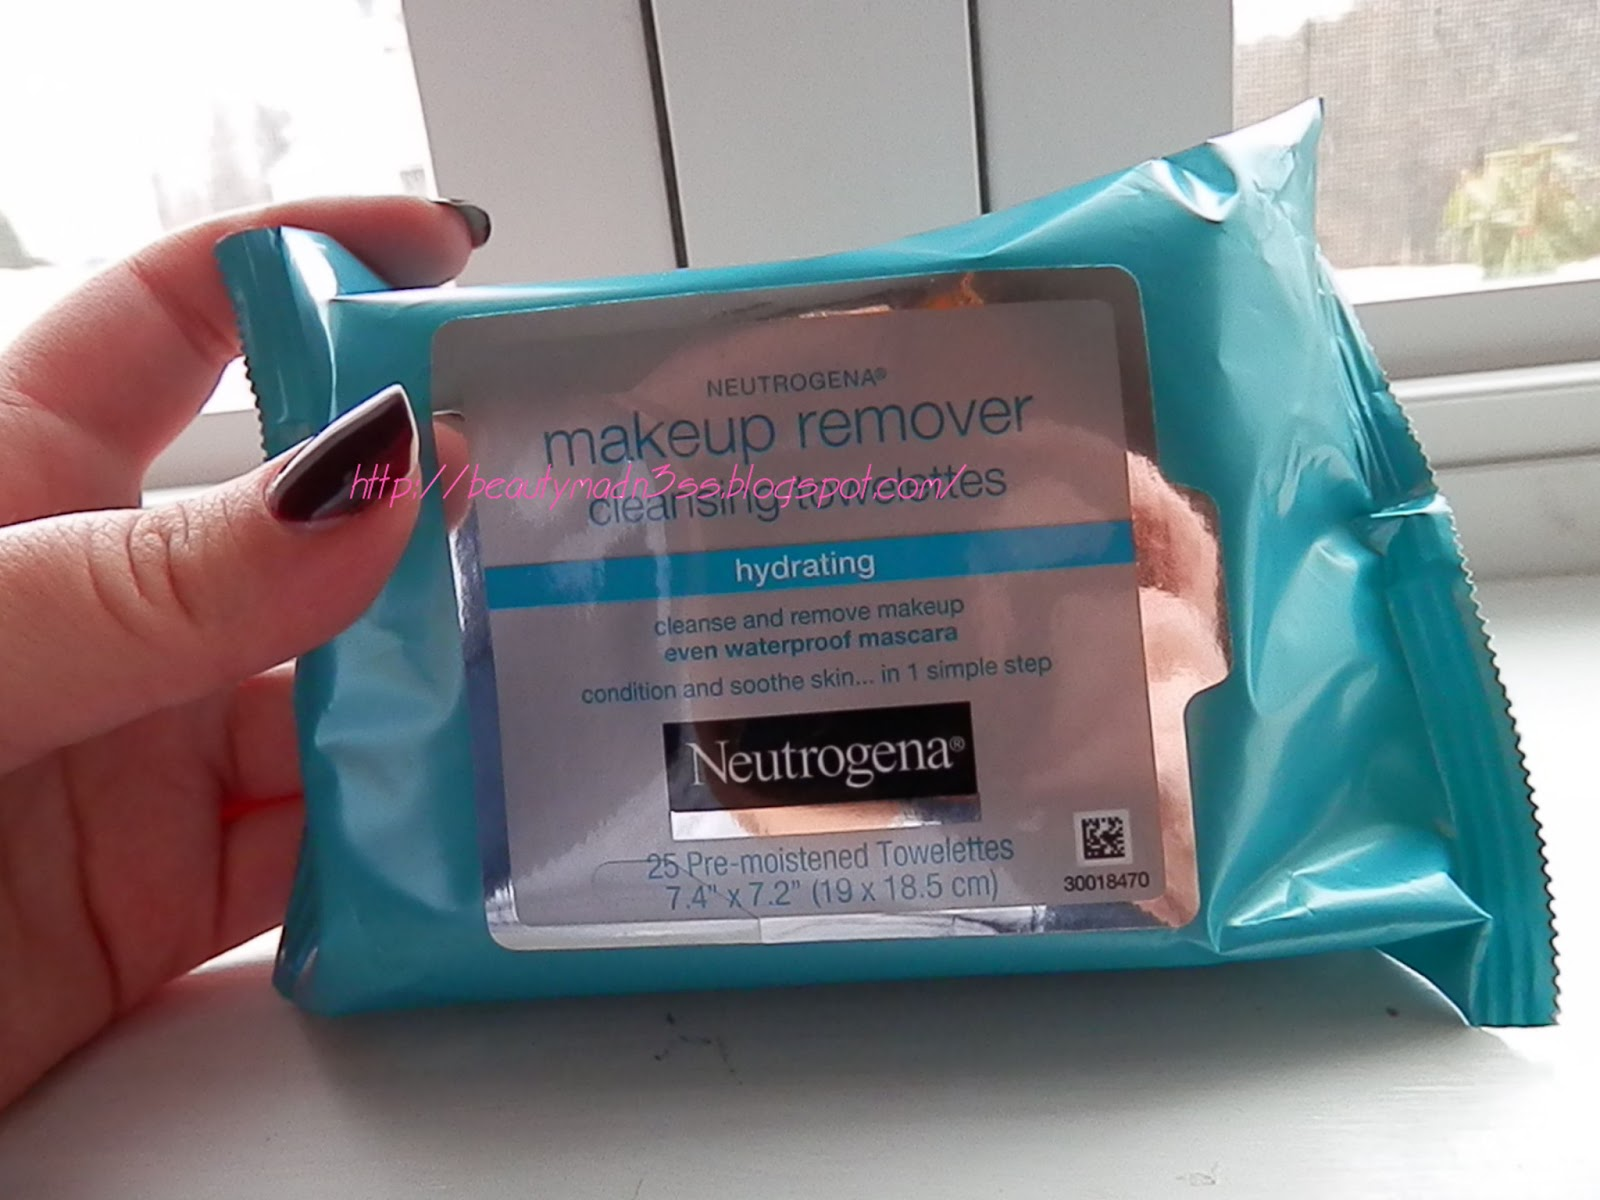 Beauty Madness Drugstore Haul Feb 23rd And Some Reviews